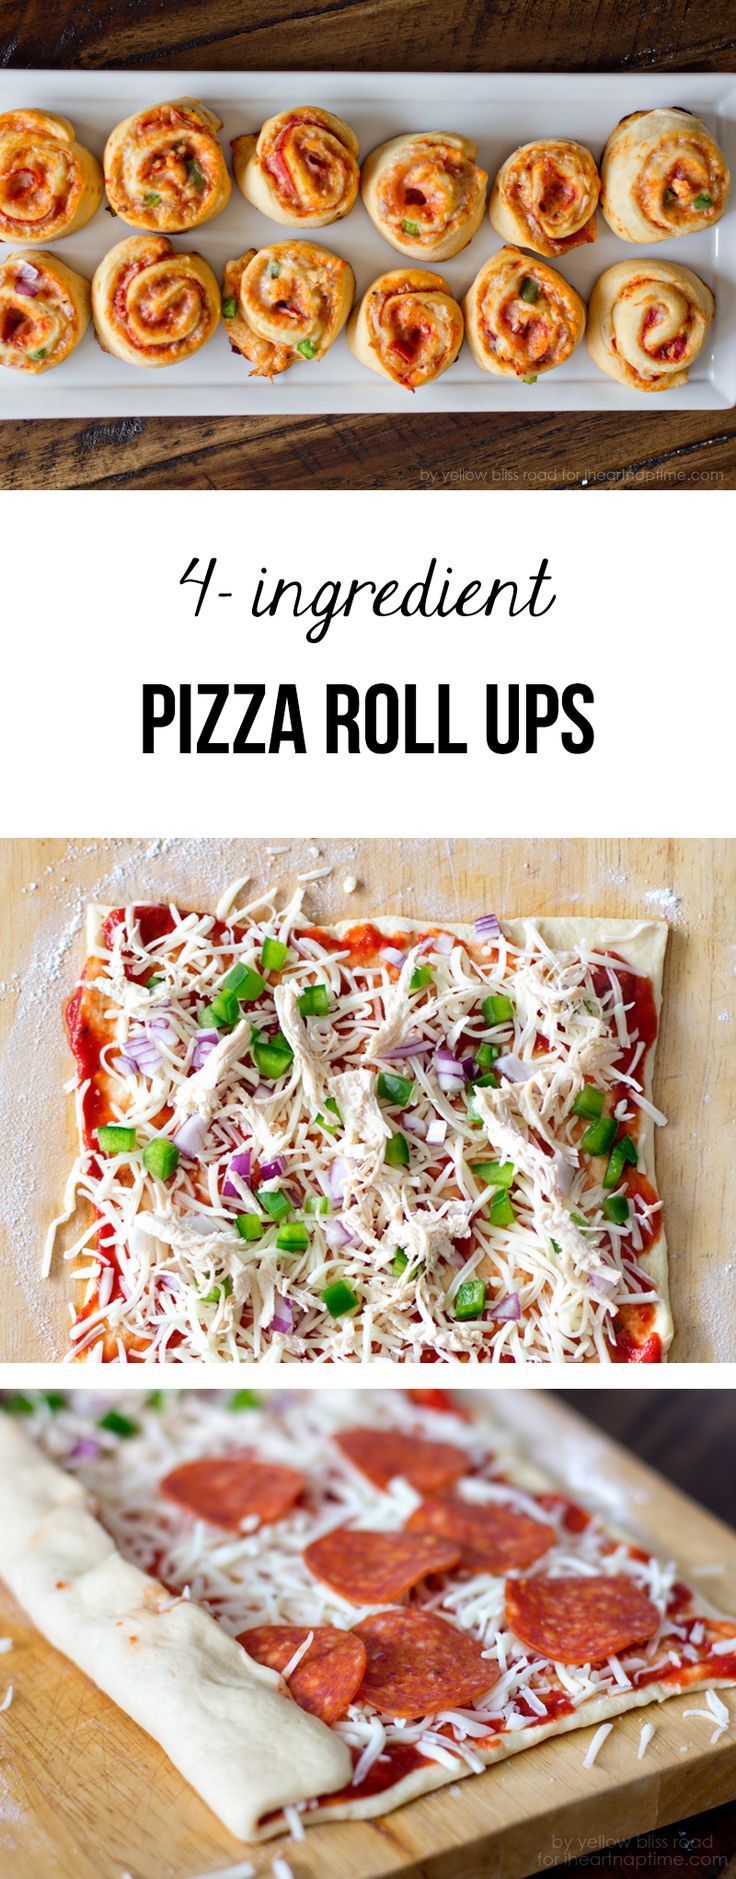 These 4-ingredient pizza roll ups come together so easy and are loved by all! Perfect for a quick dinner or snack. Great appetizer recipe.